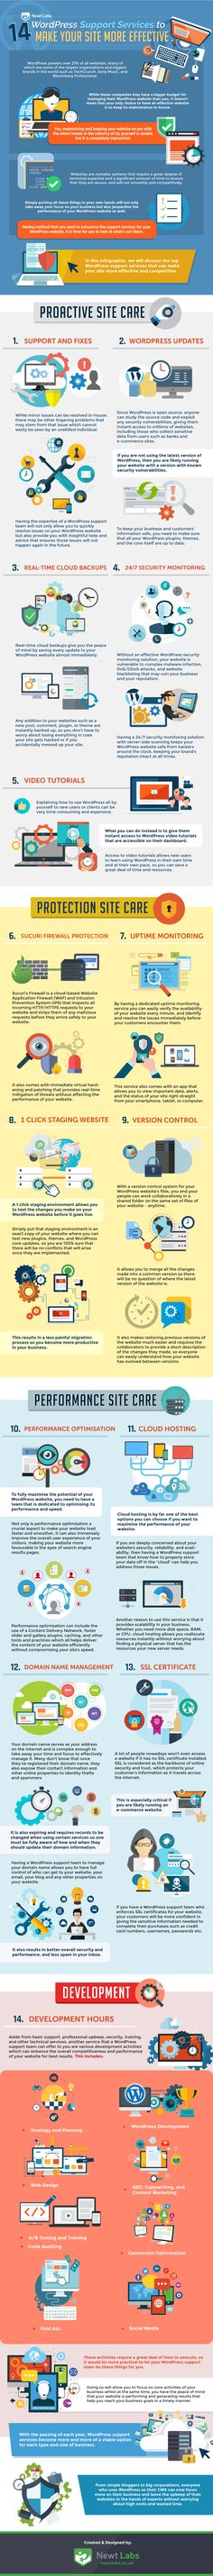 14 WordPress Support Services To Make Your Site More Effective Infographic